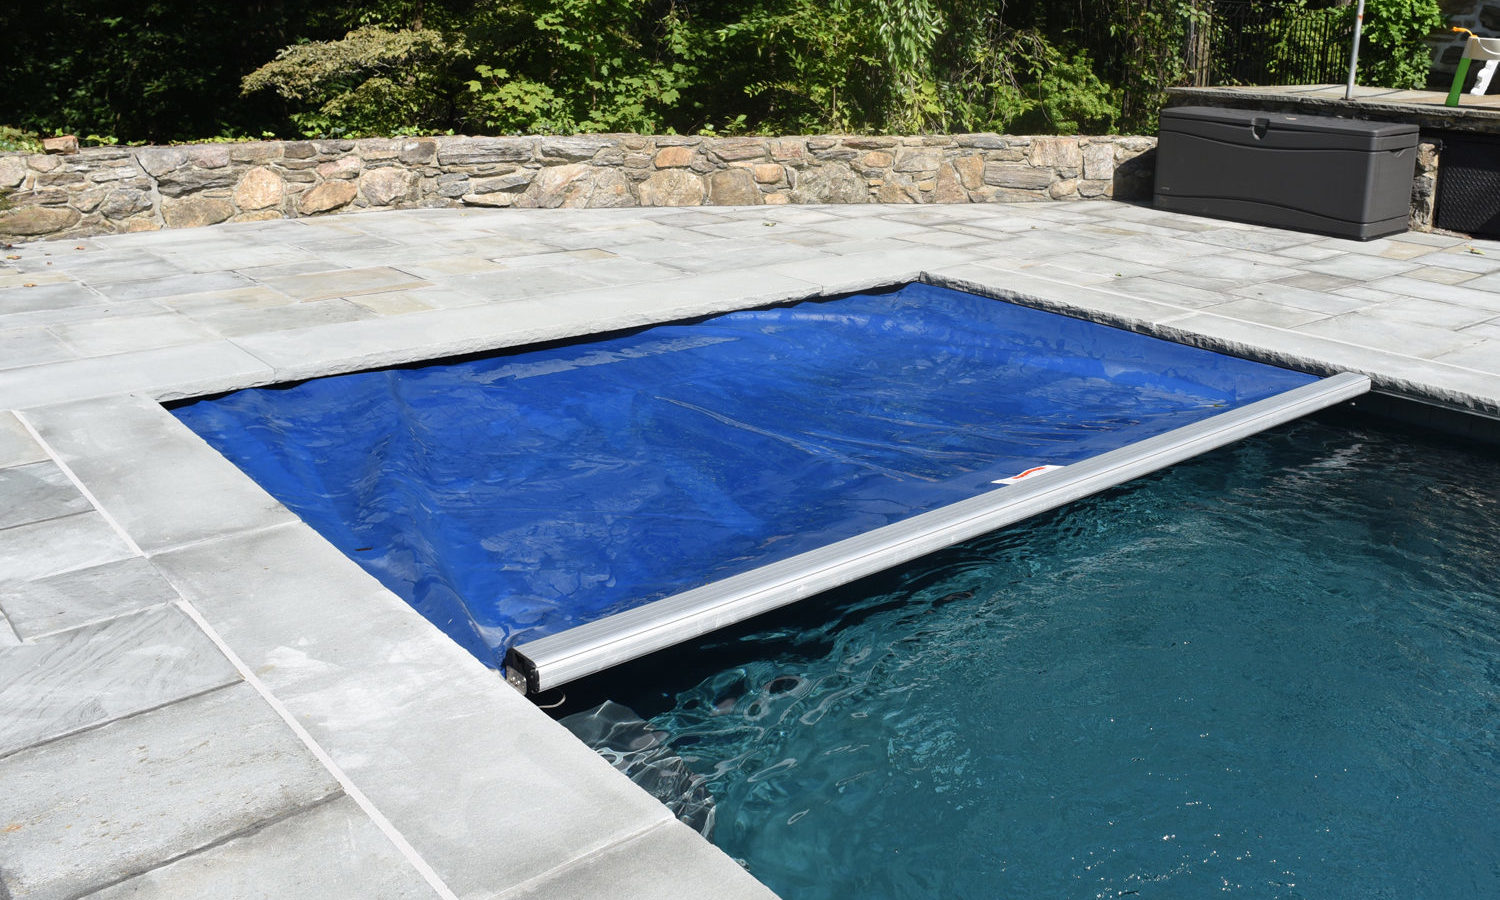 New pool cover for a new pool construction, under guide system